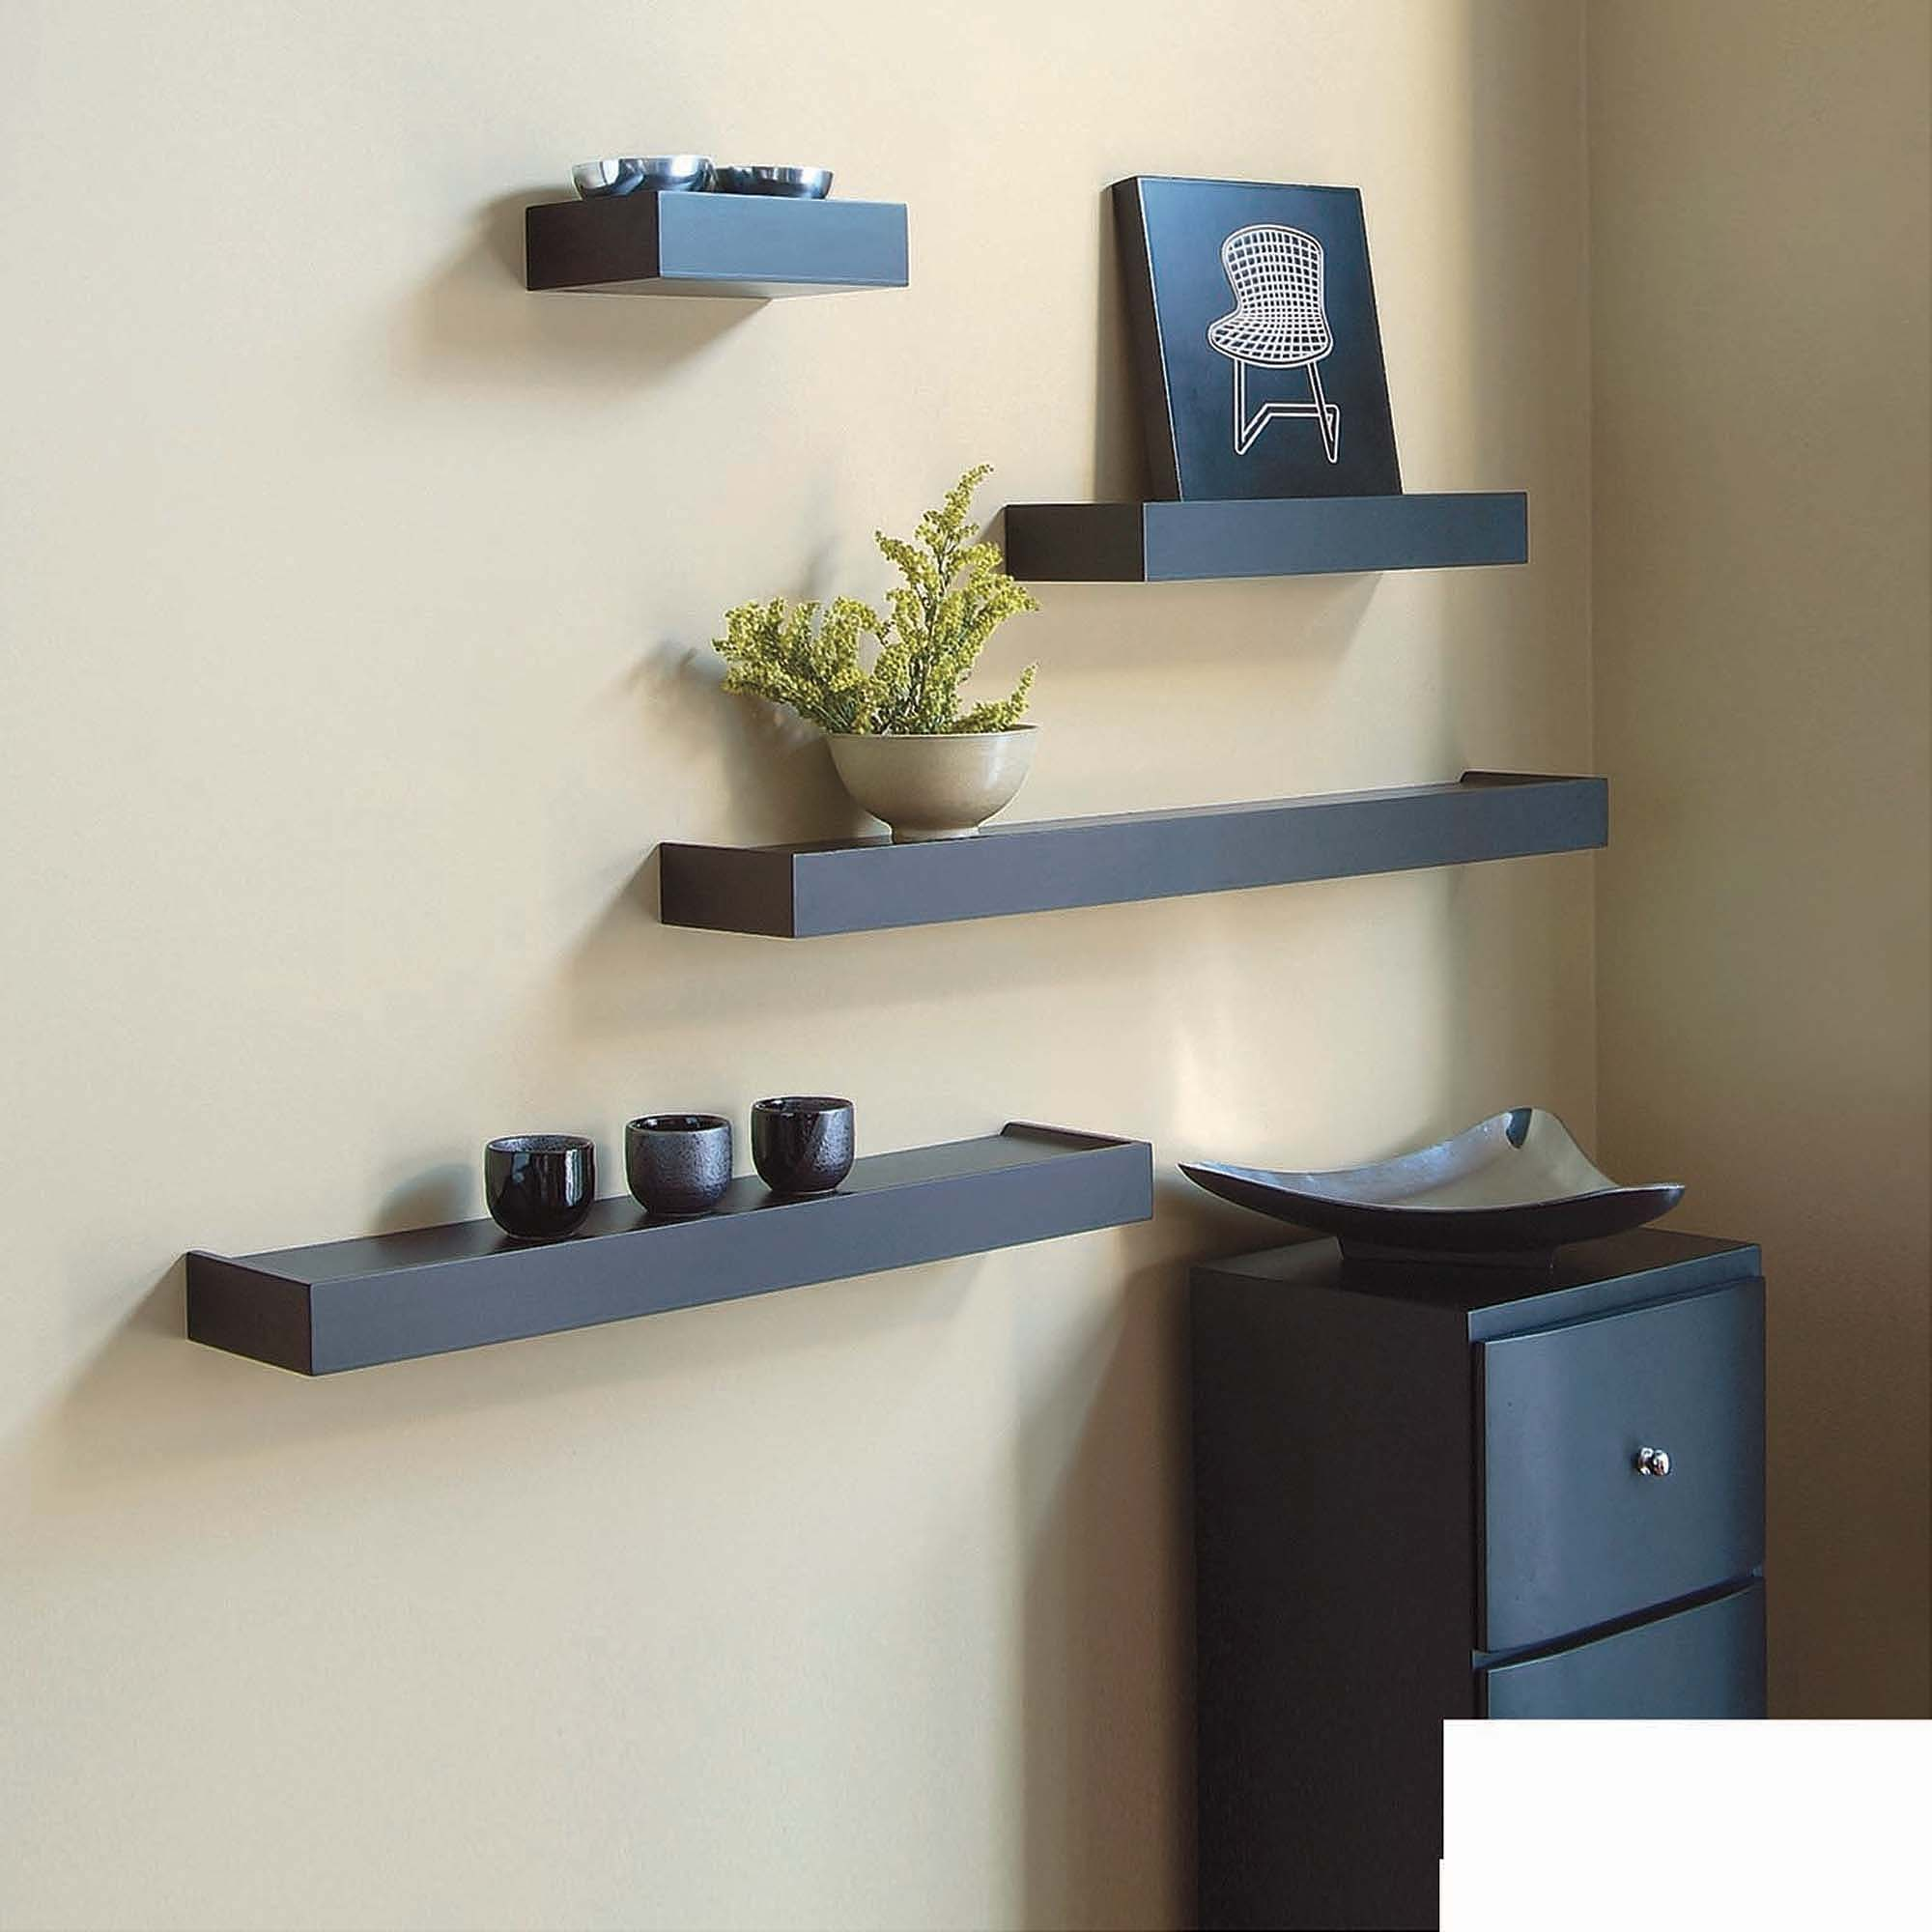 "Kiera Grace Vertigo Set of 4 Black Wall Shelves, 6"", 12"", 20"", 24"""